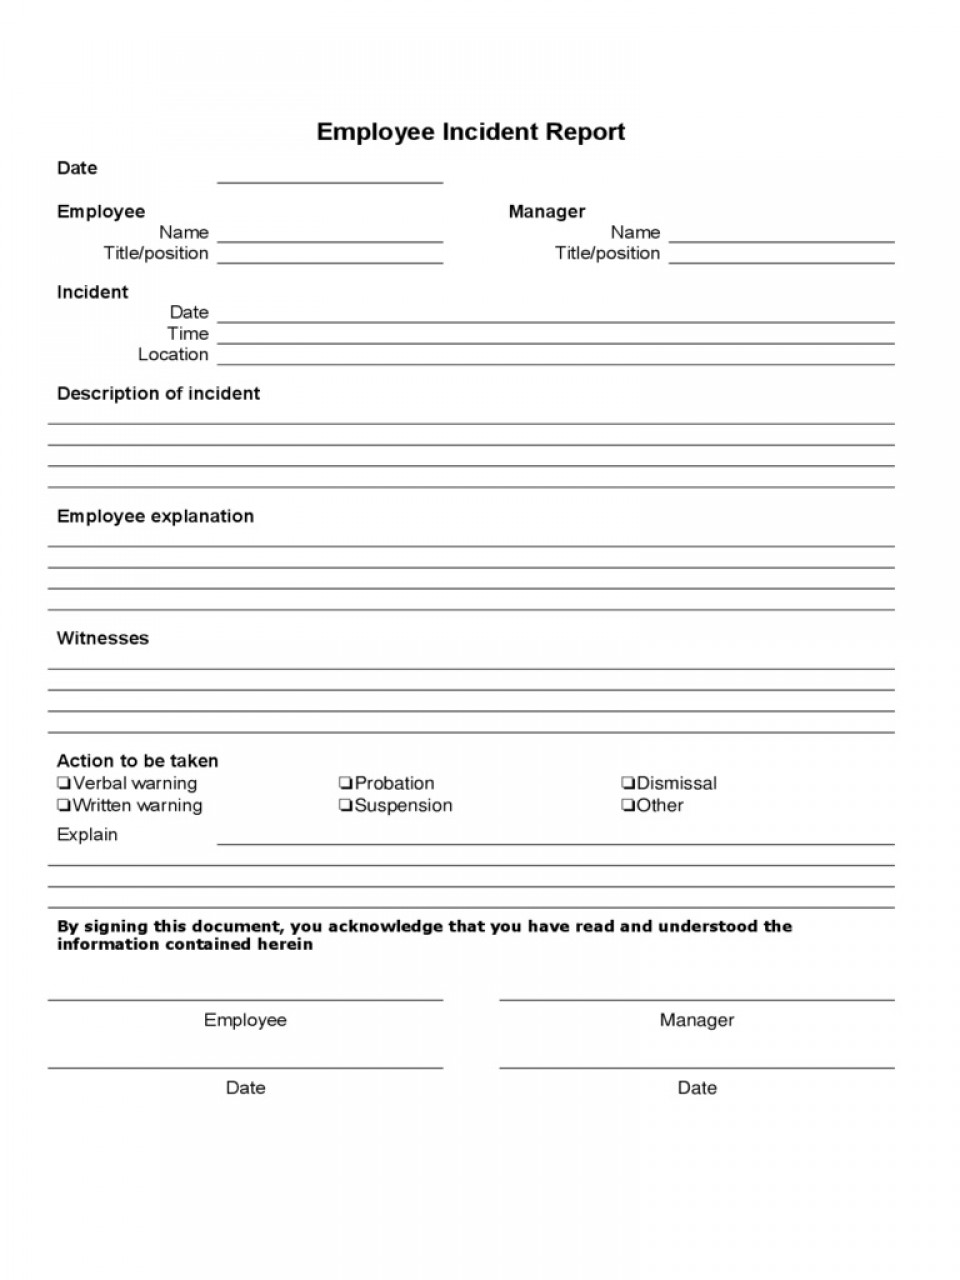 Incident Report Form Template Word Employee  Downloadable Free960